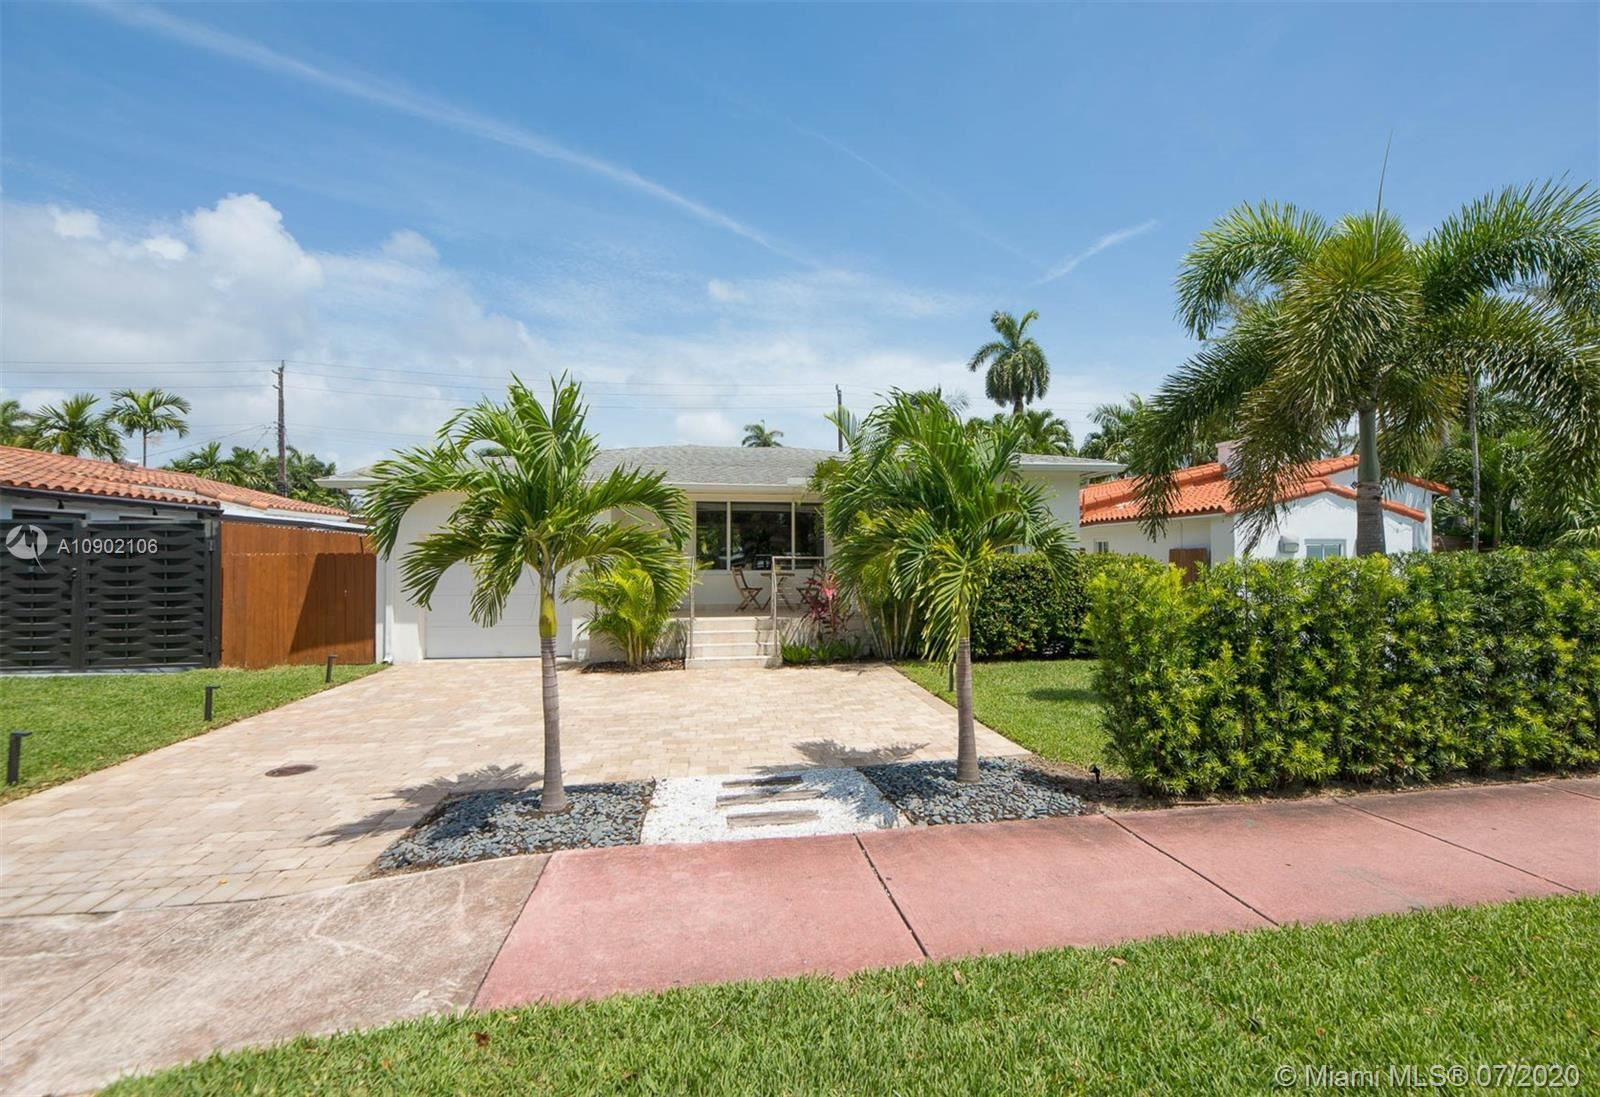 1365 Normandy Dr, Miami Beach, FL 33141 - #: A10902106